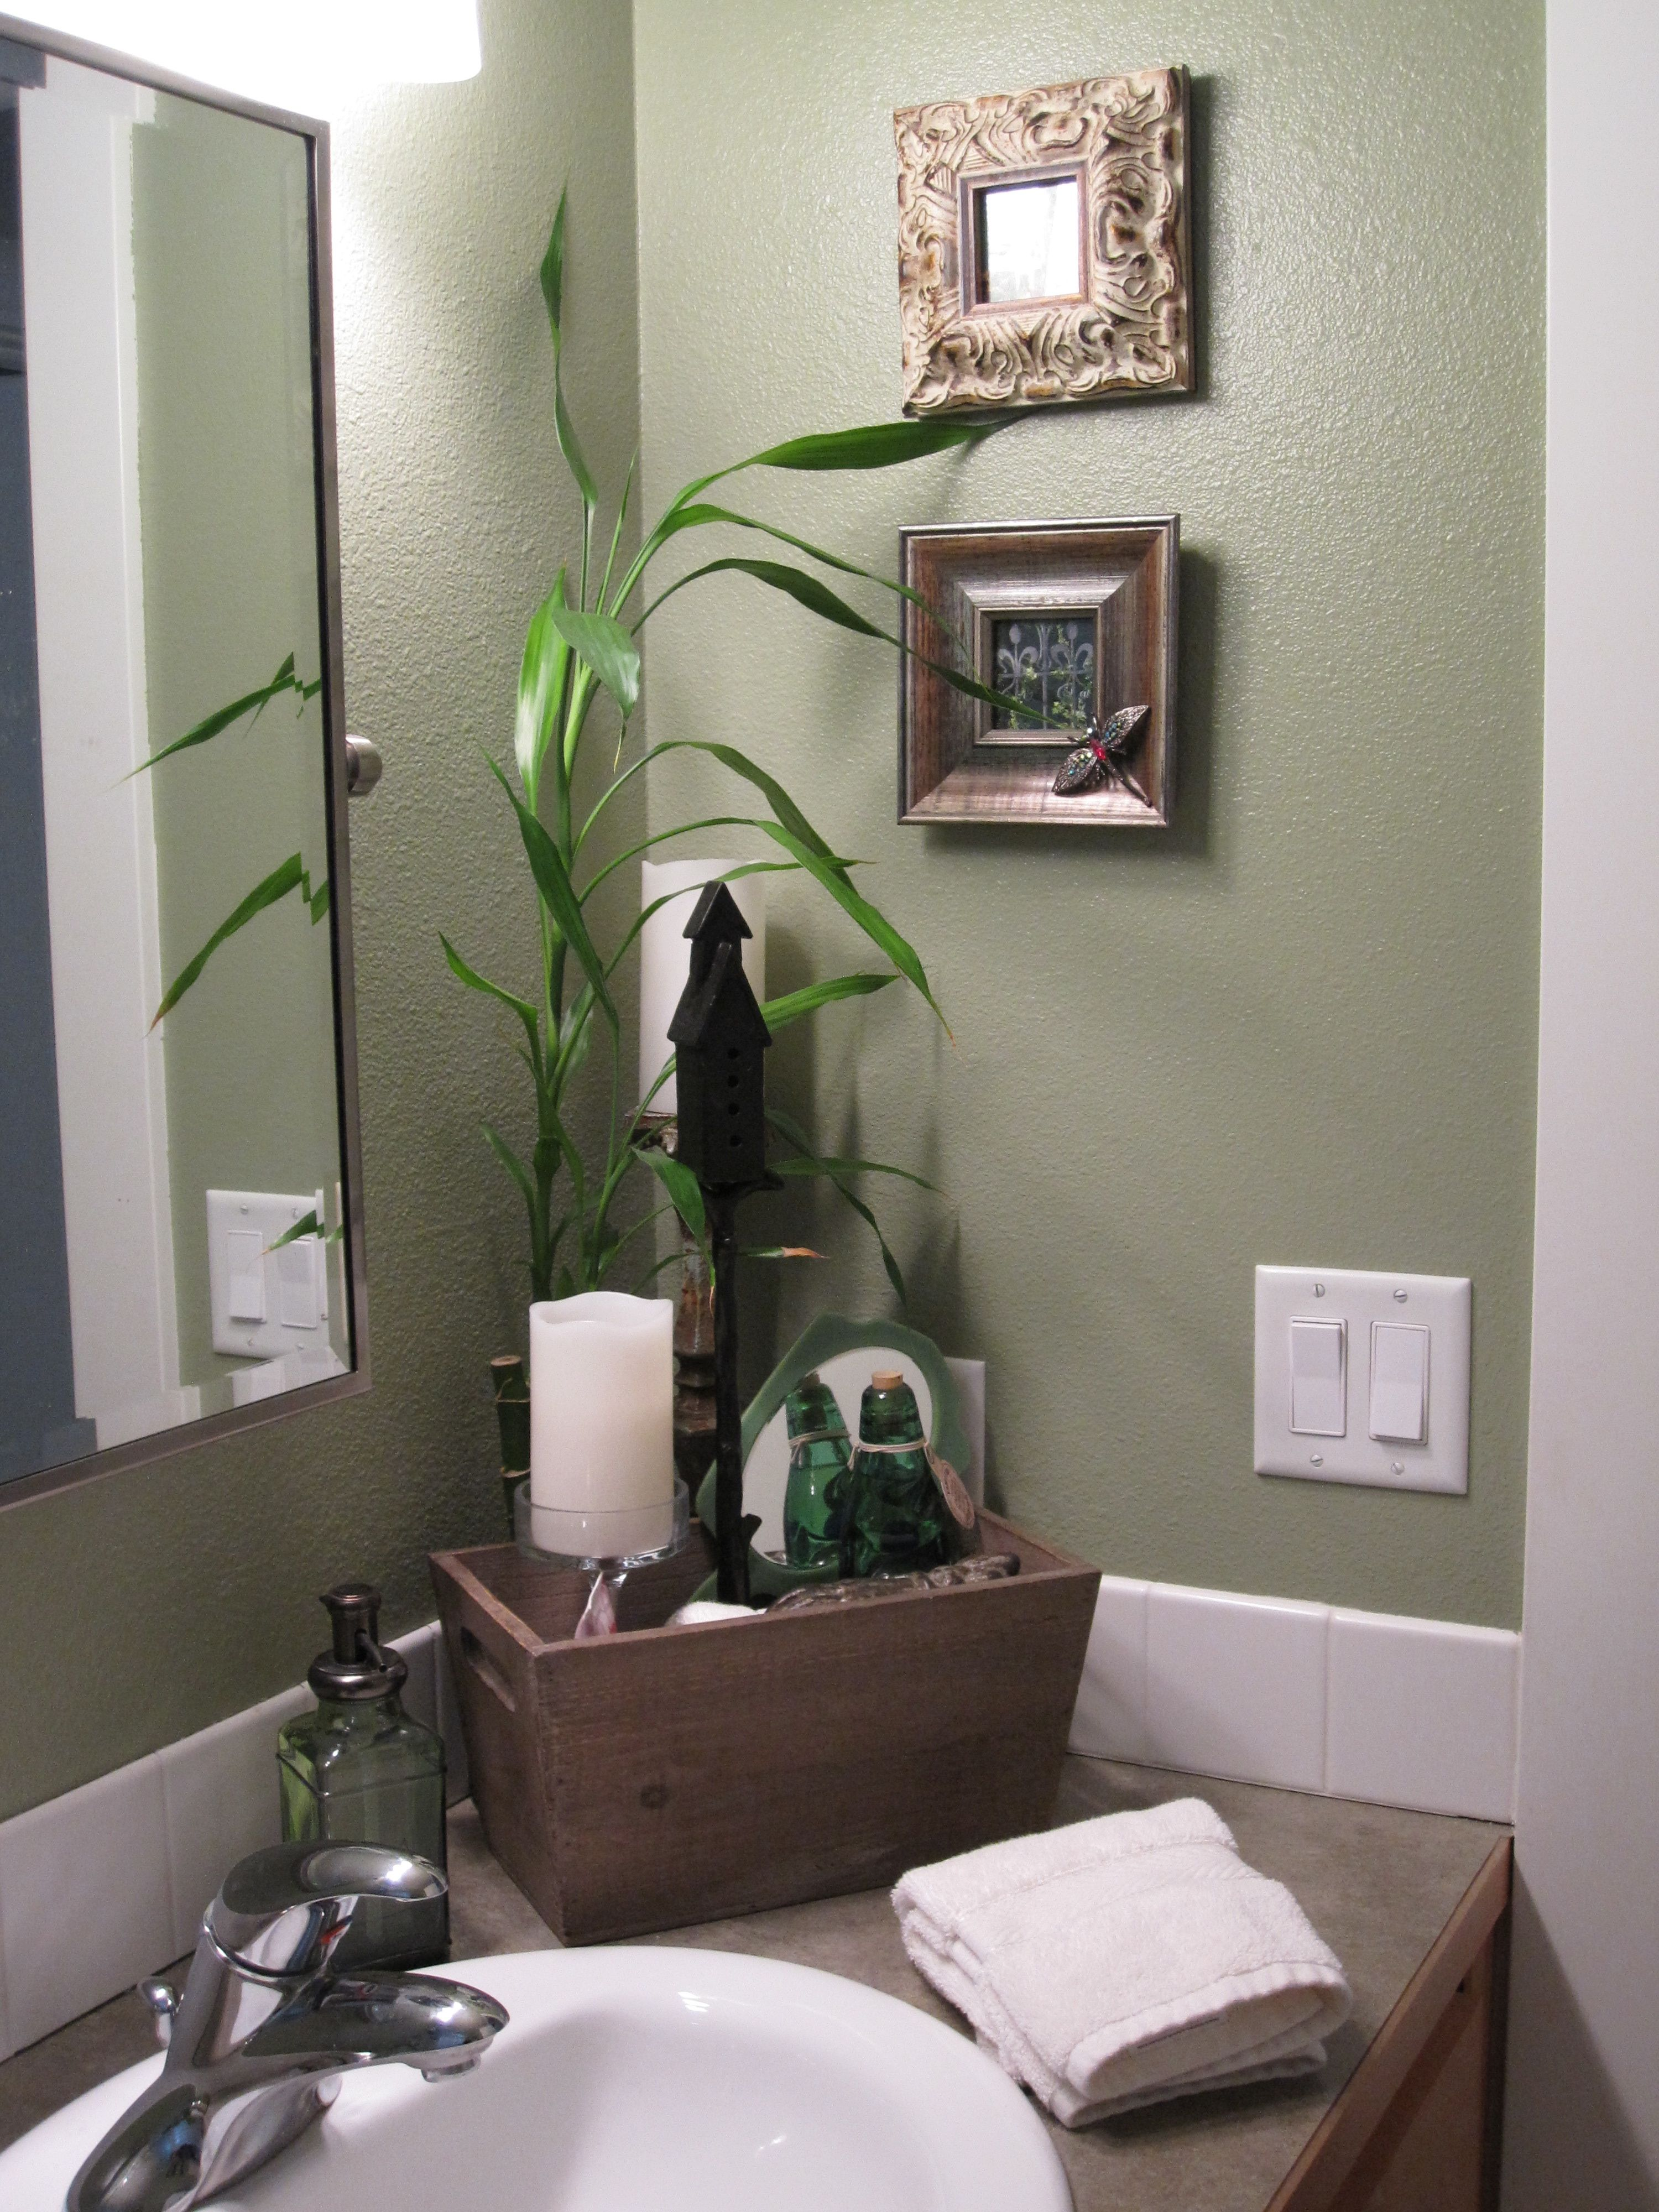 Green bathroom paint ideas - Spa Like Feel In The Guest Bathroom The Fresh Green Color Makes The Narrow